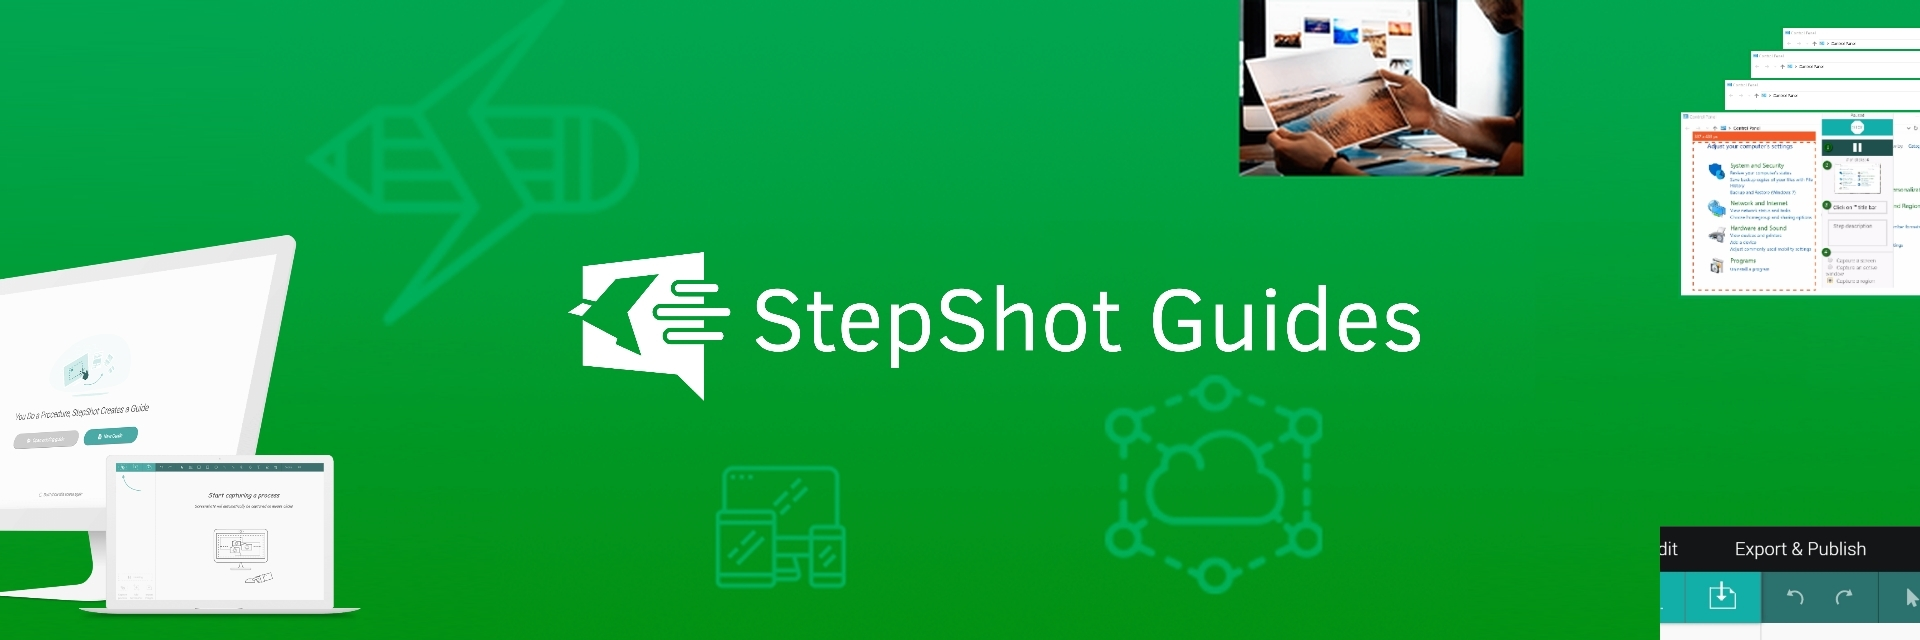 mag stepshot guides wide